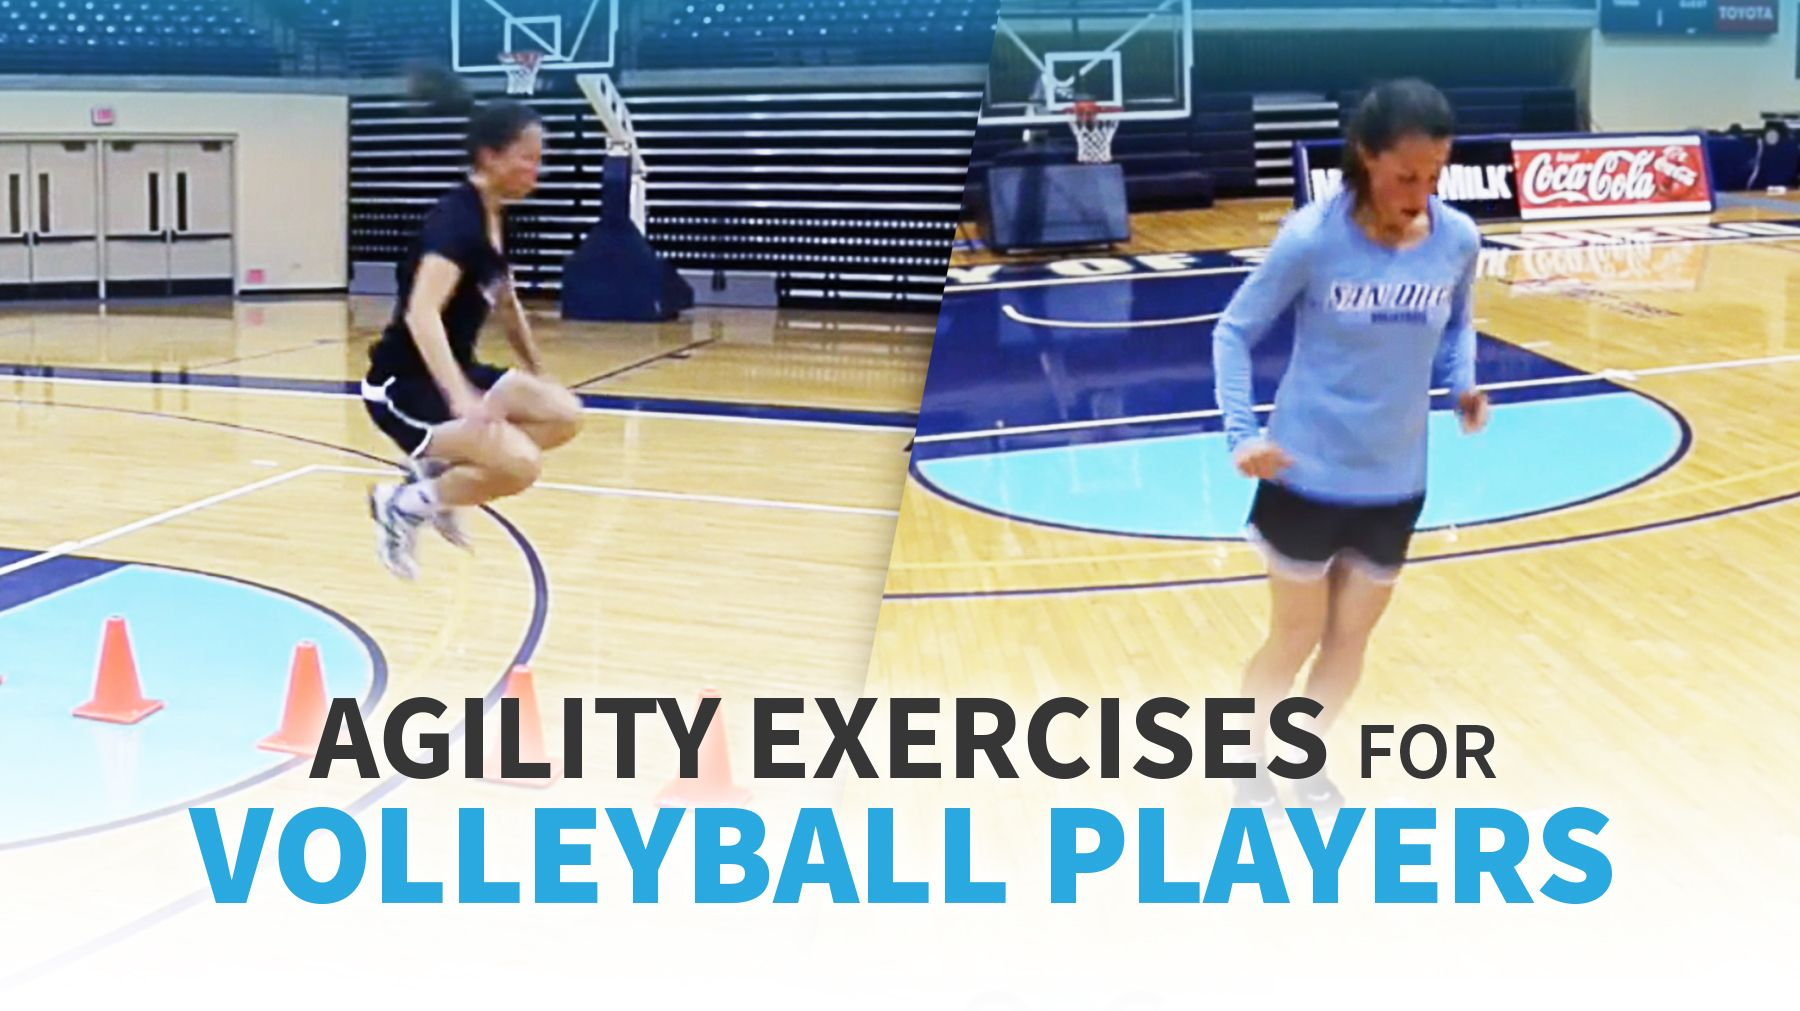 Agility Exercises For Volleyball Players The Art Of Coaching Volleyball Volleyball Conditioning Volleyball Workouts Volleyball Training